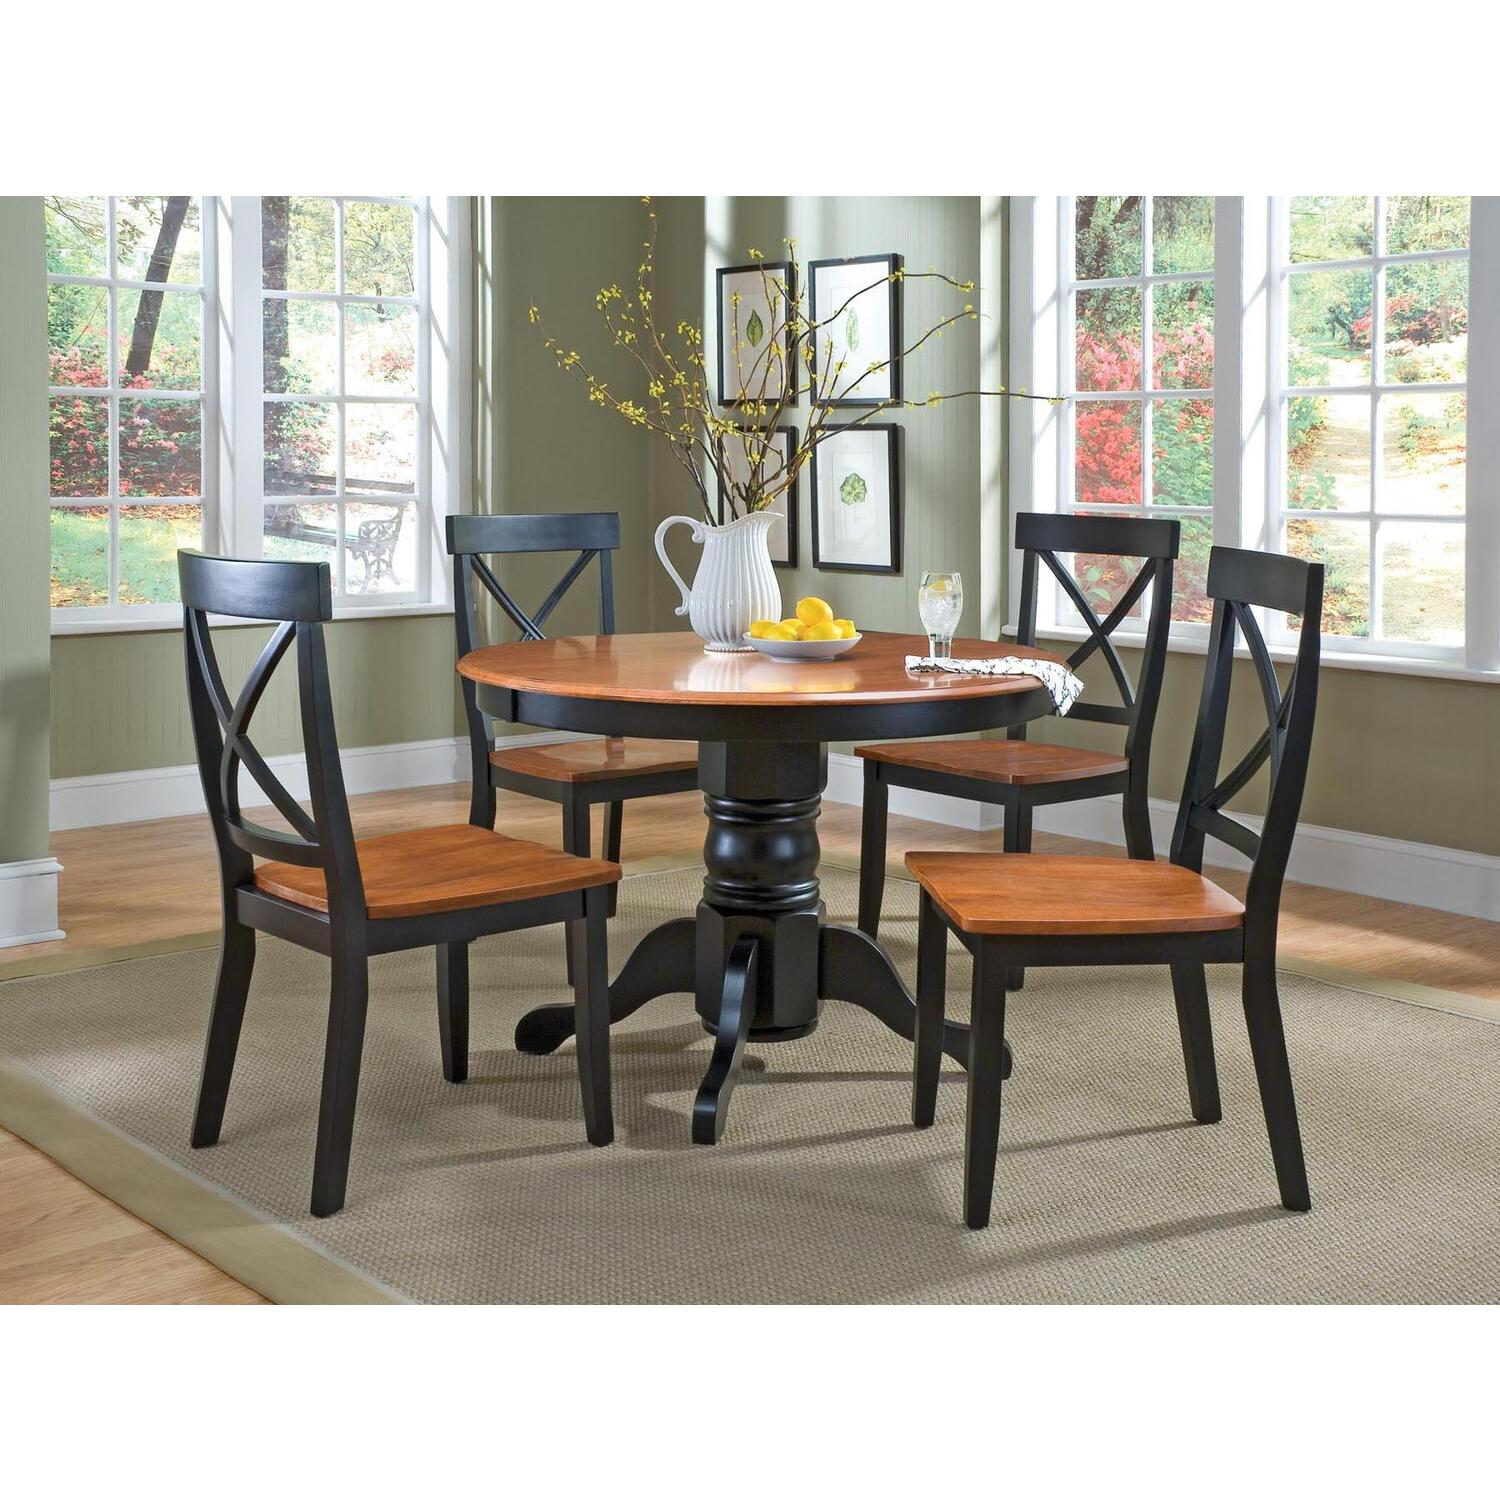 Furniture home goods appliances athletic gear fitness for Small dining room table sets